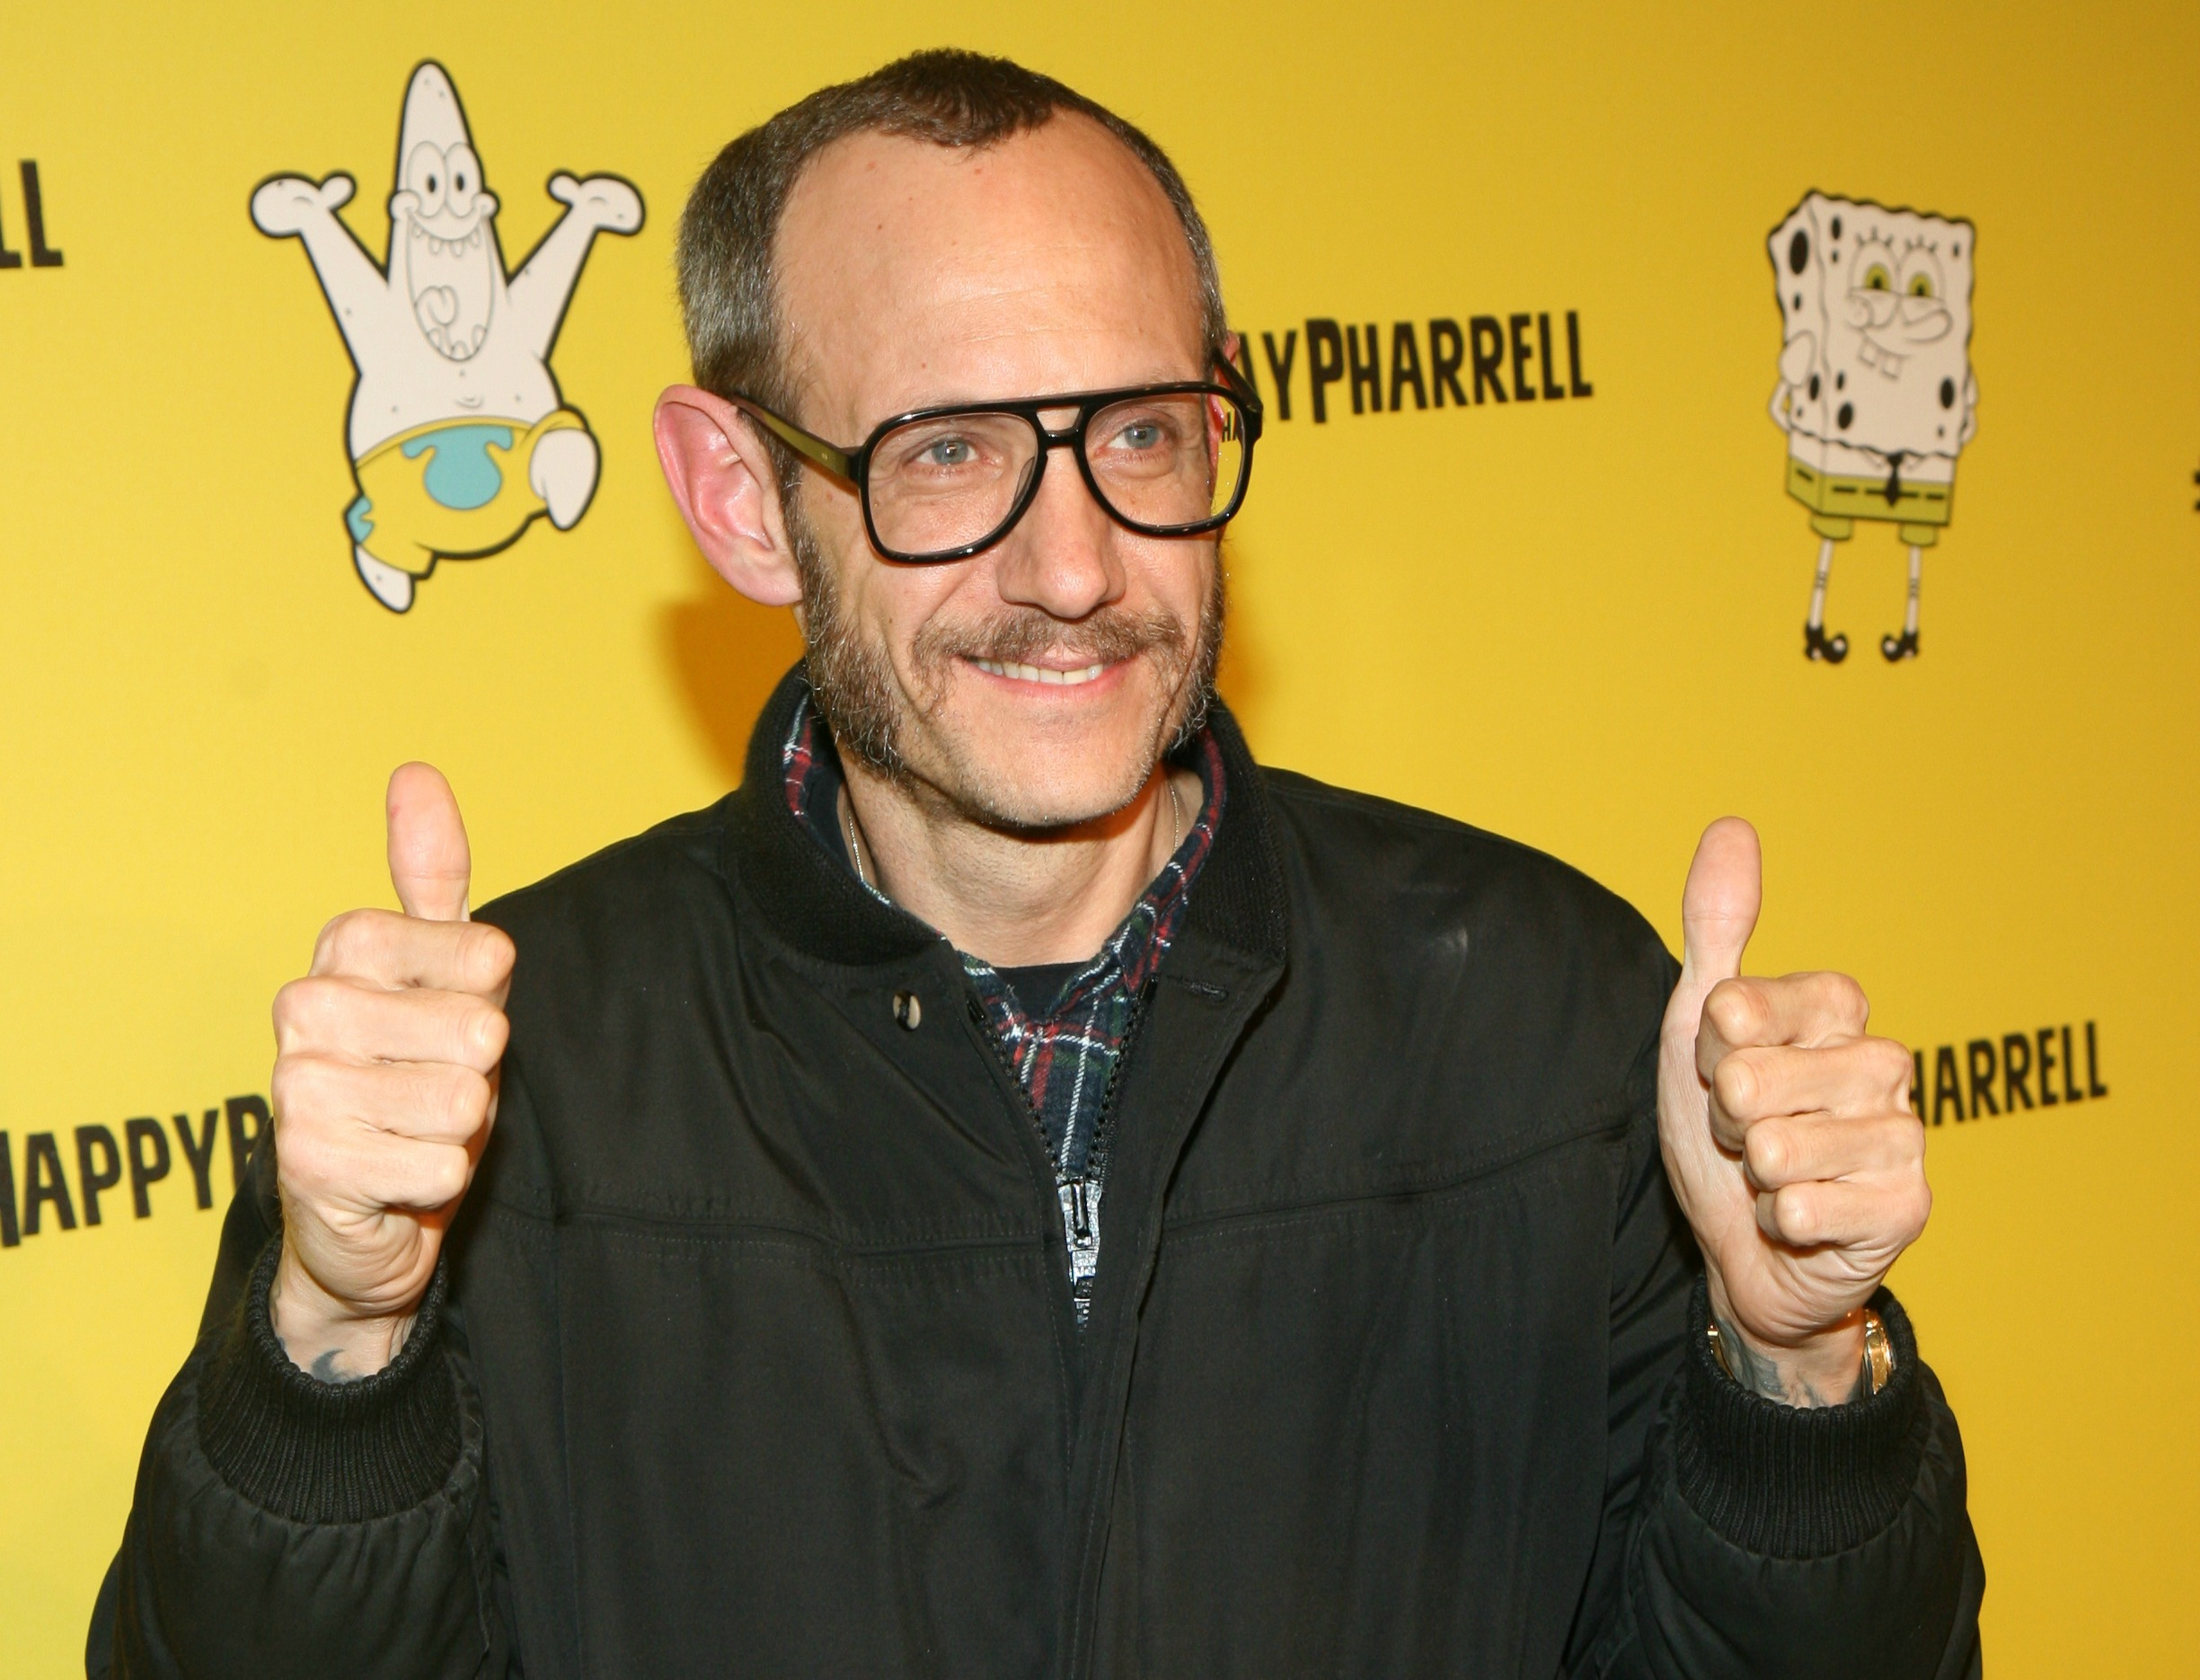 Terry Richardson finds himself in hot water over a sexual text